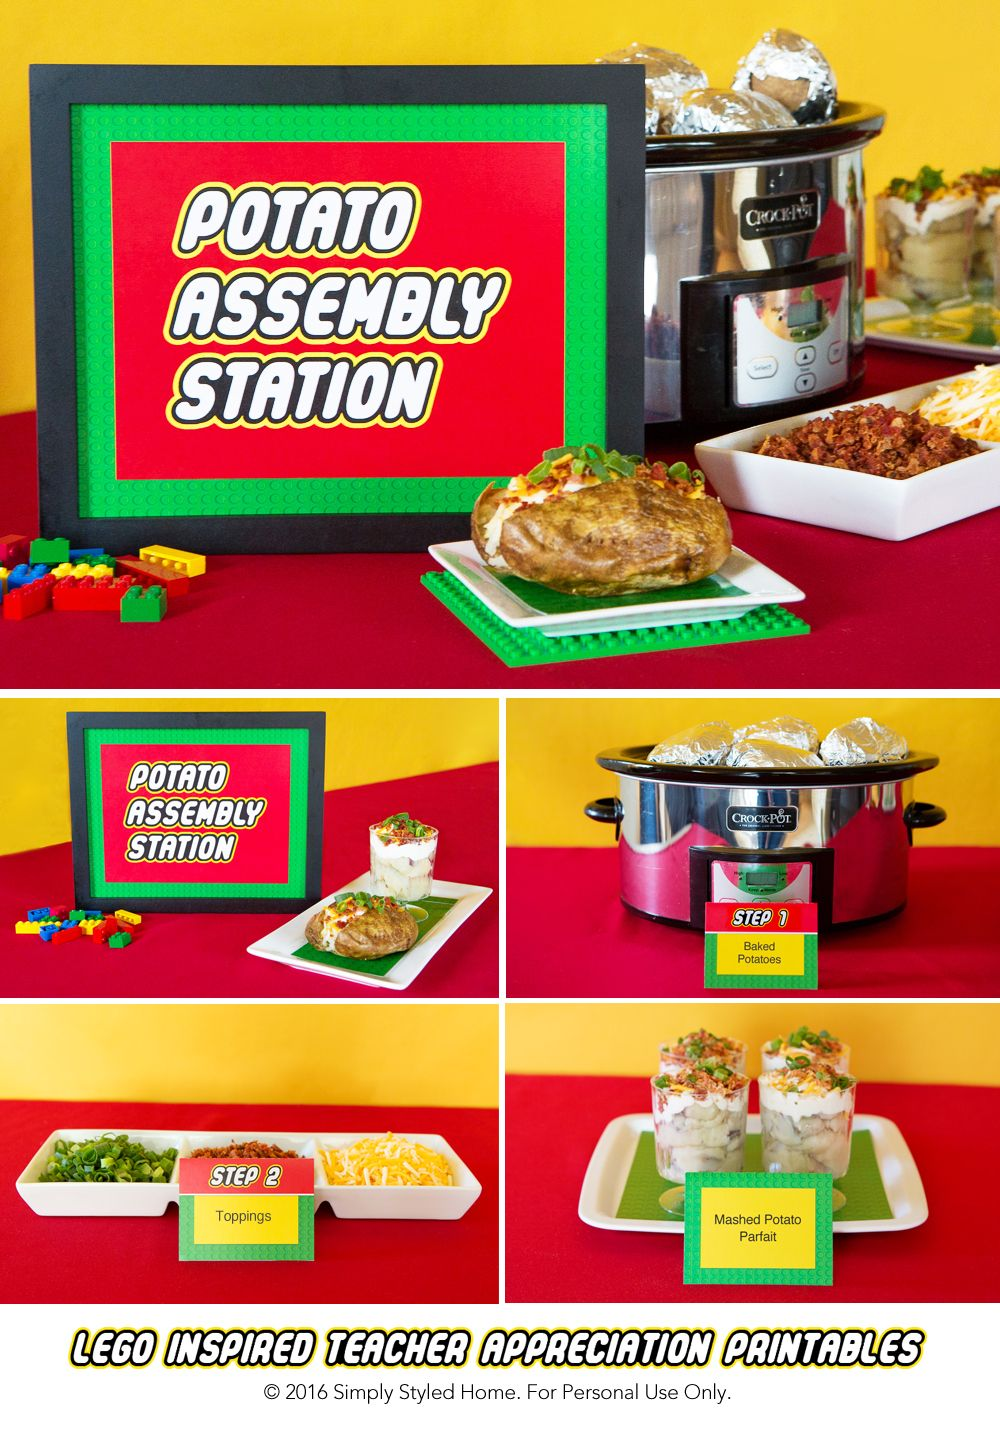 Lego inspired teacher and staff appreciation week staff potato assembly station lego teacher and staff appreciation printables forumfinder Choice Image